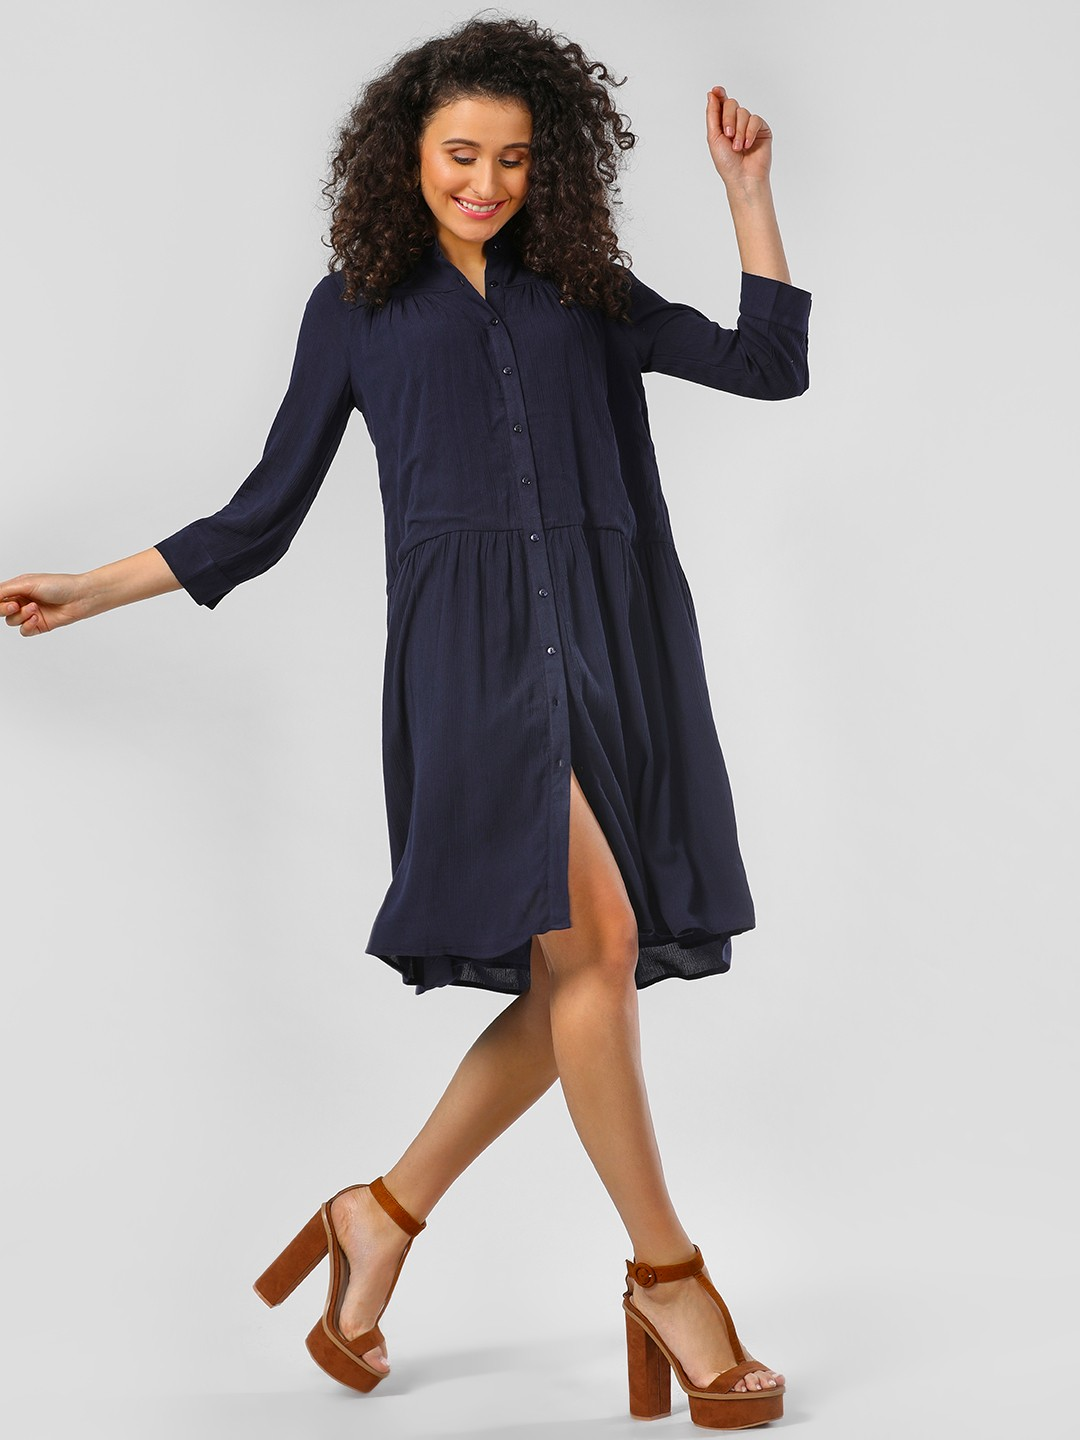 Femella Navy Navy Tier Shirt Mini Dress 1